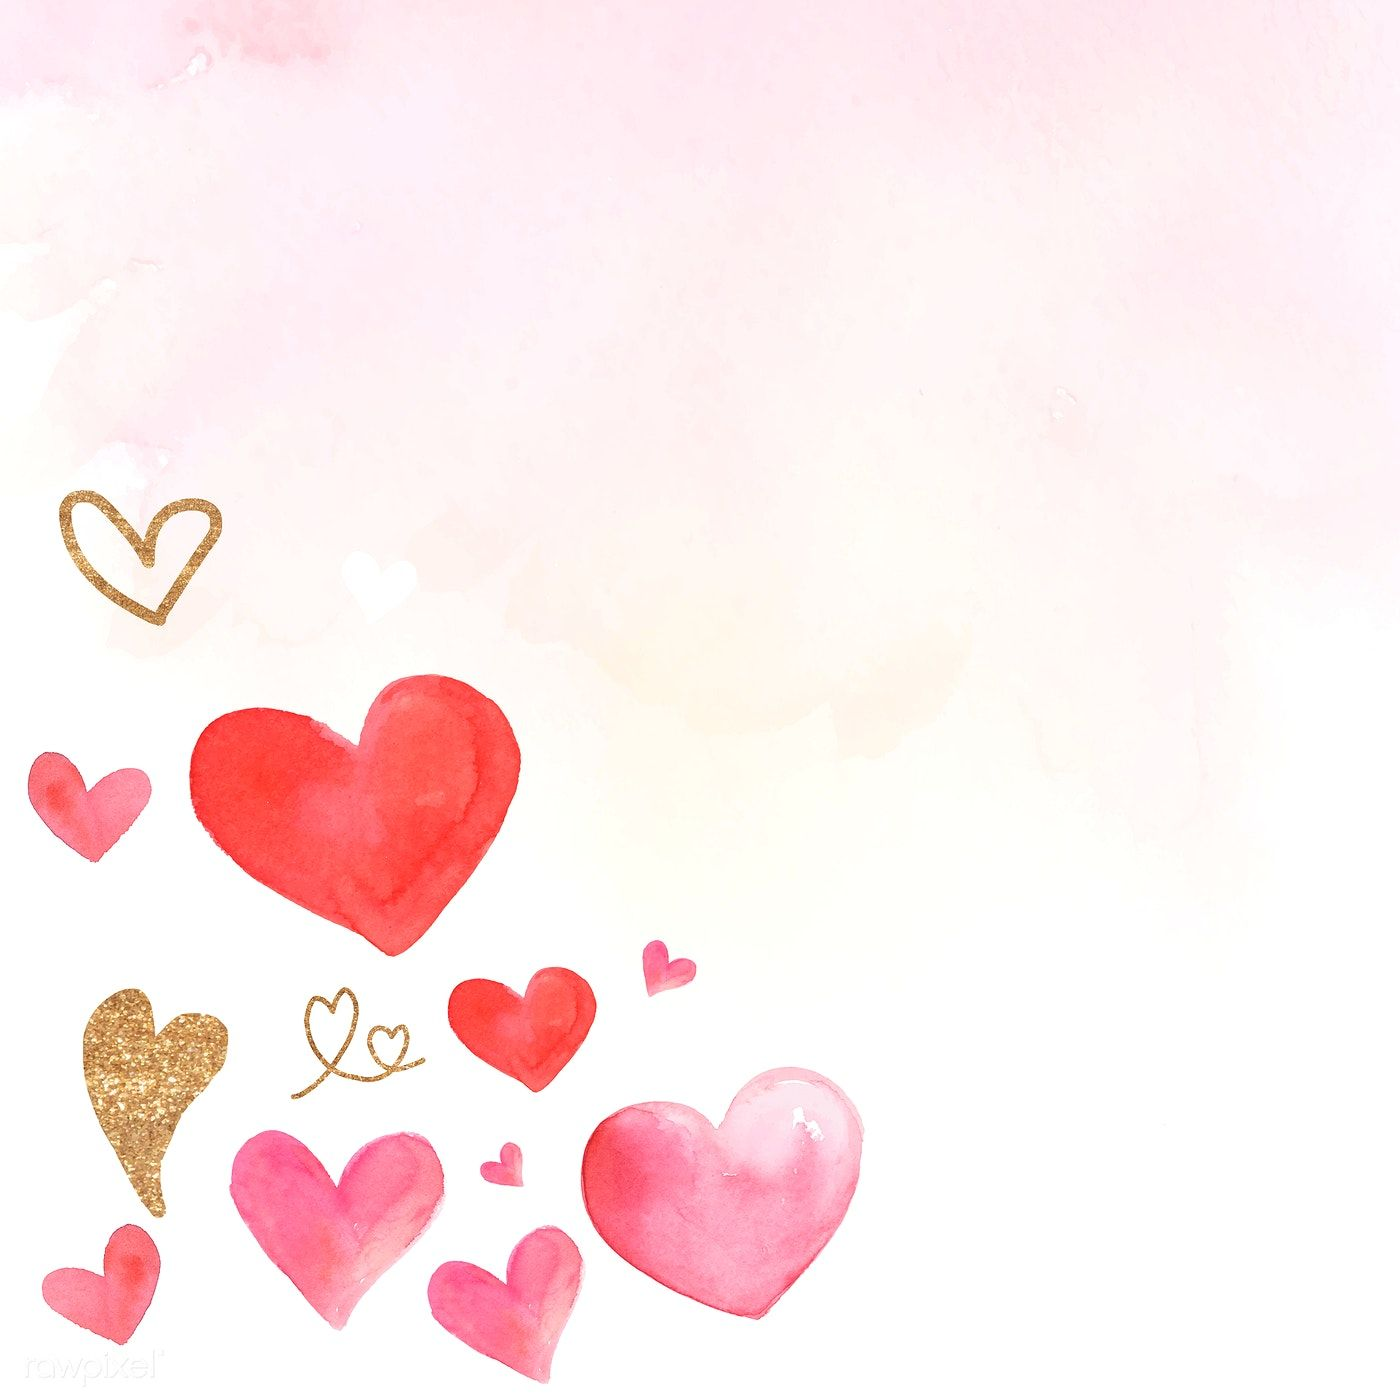 Download Premium Vector Of Valentine S Day Background Watercolor Style Valentines Day Background Watercolor Background Watercolor Illustration